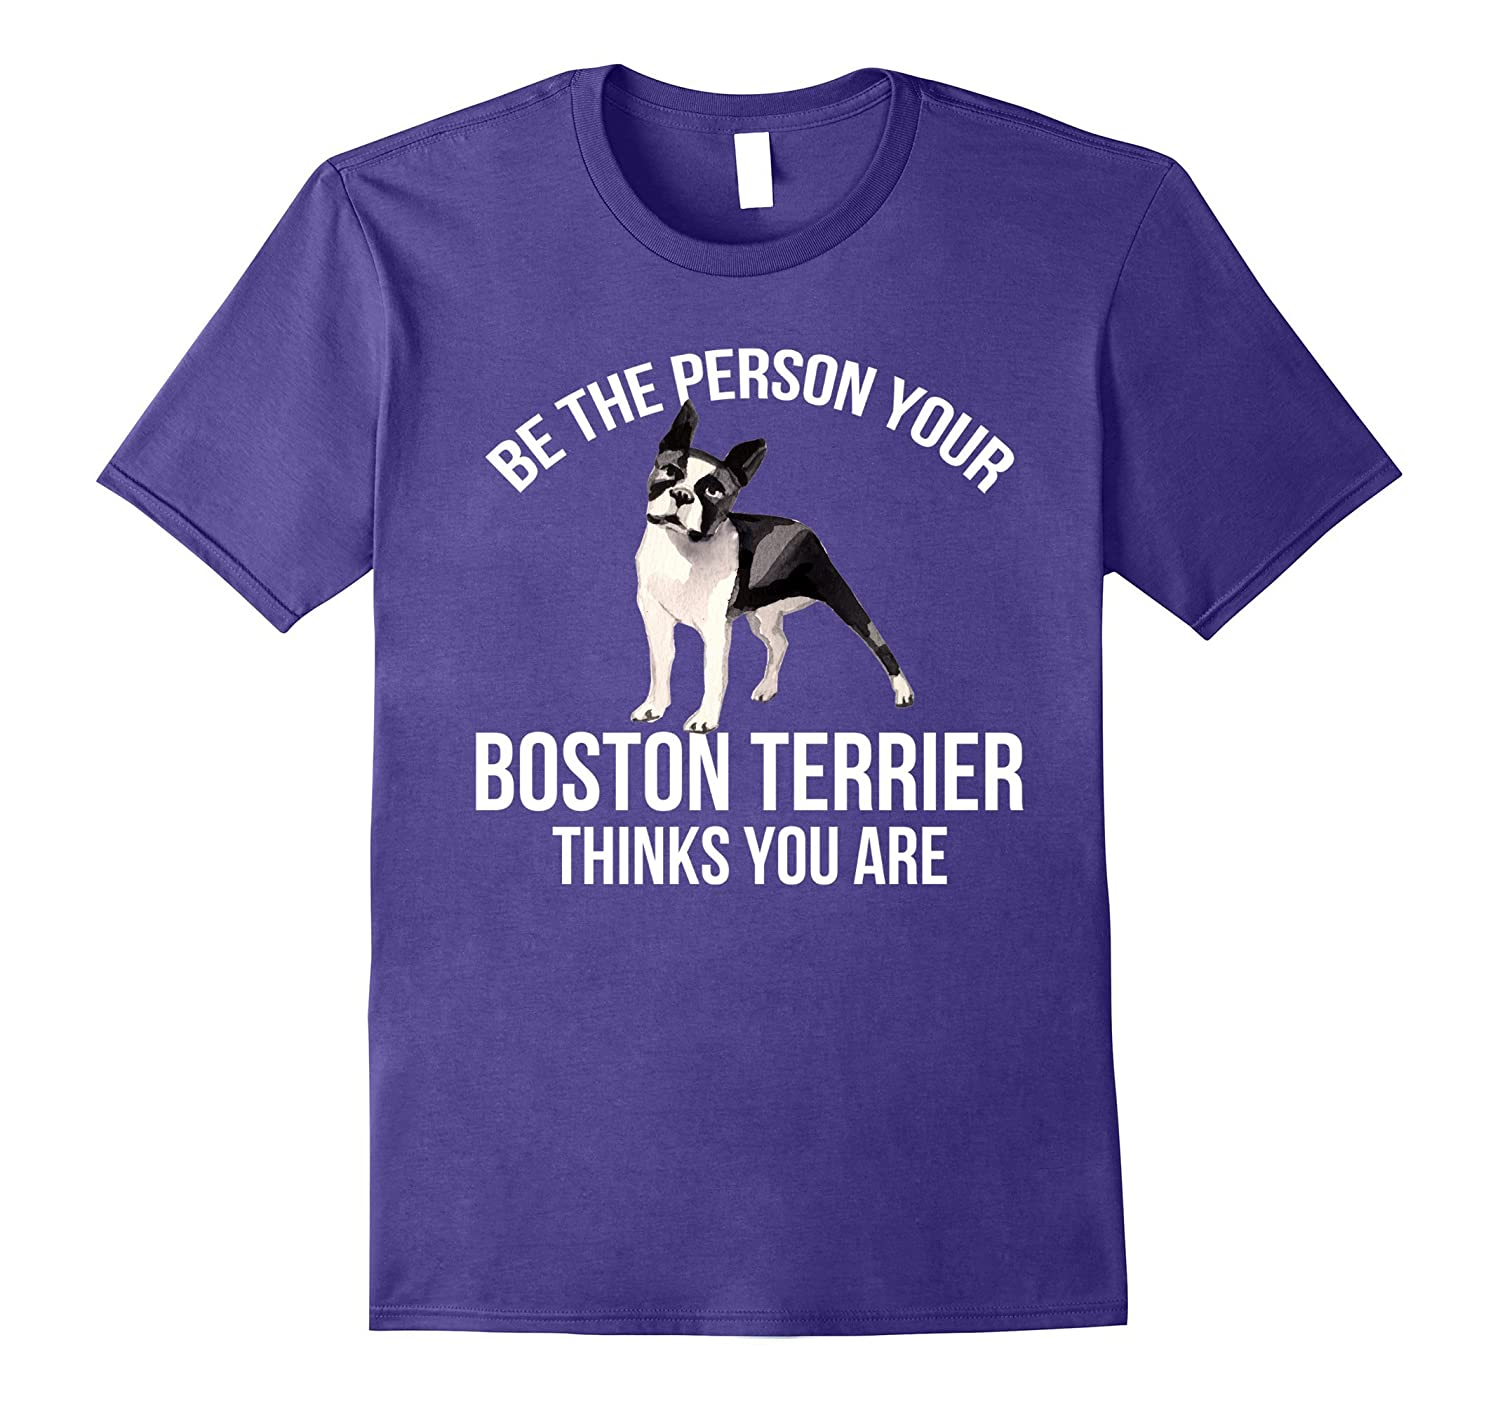 Be The Person Your Boston Terrier Thinks You Are T-shirt-Vaci